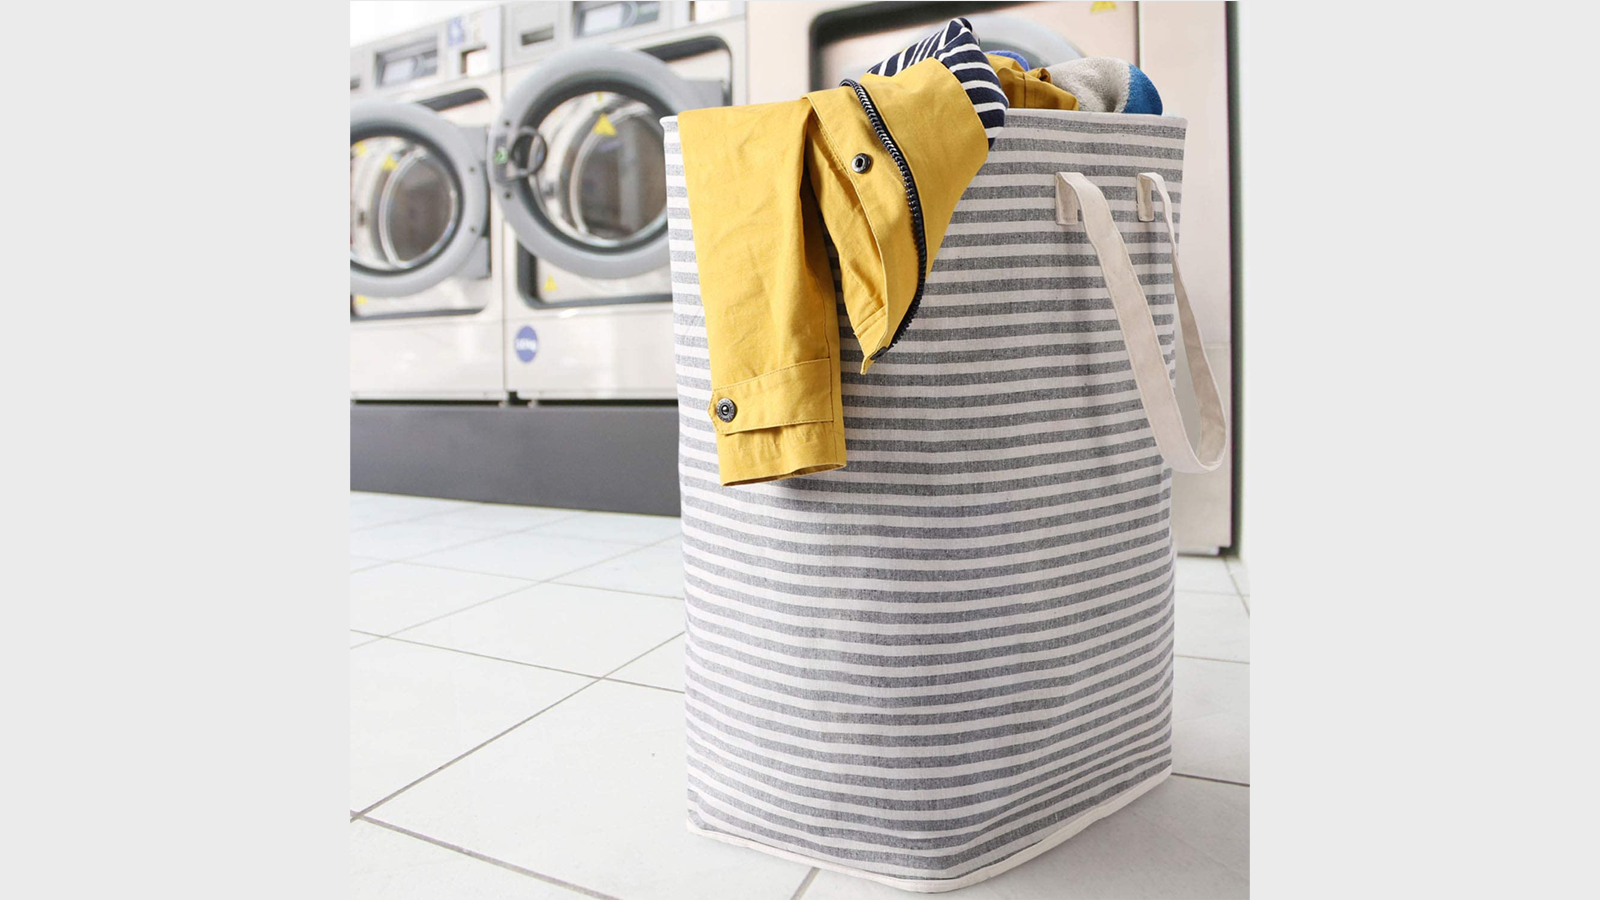 Collect Your Laundry in This Collapsible Freestanding Hamper